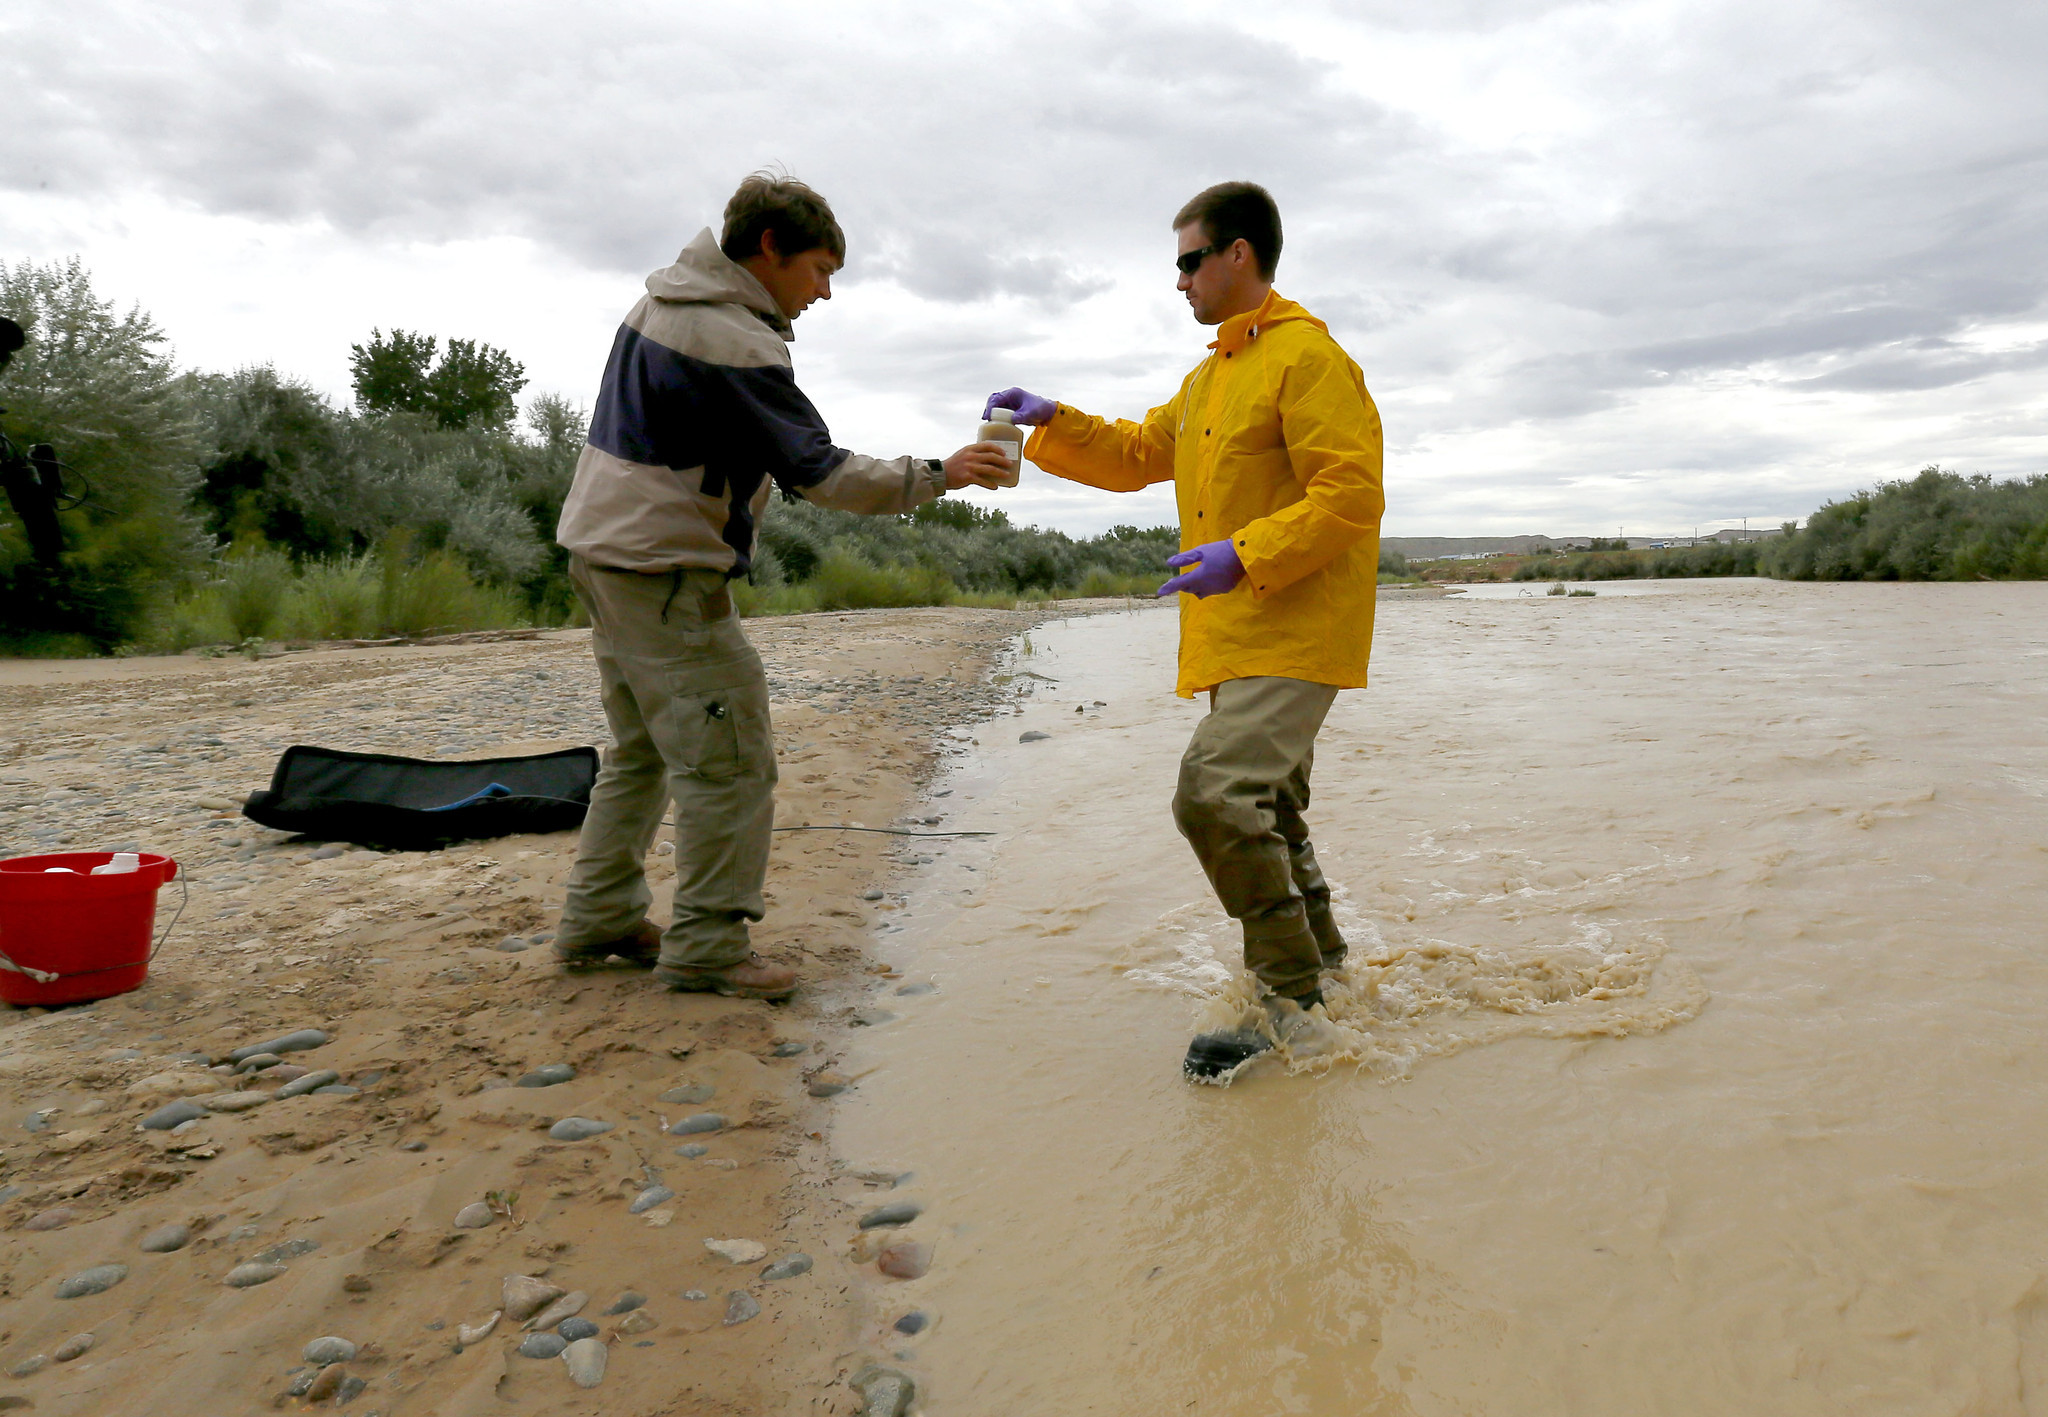 States downstream from contaminated river upset that EPA didnt